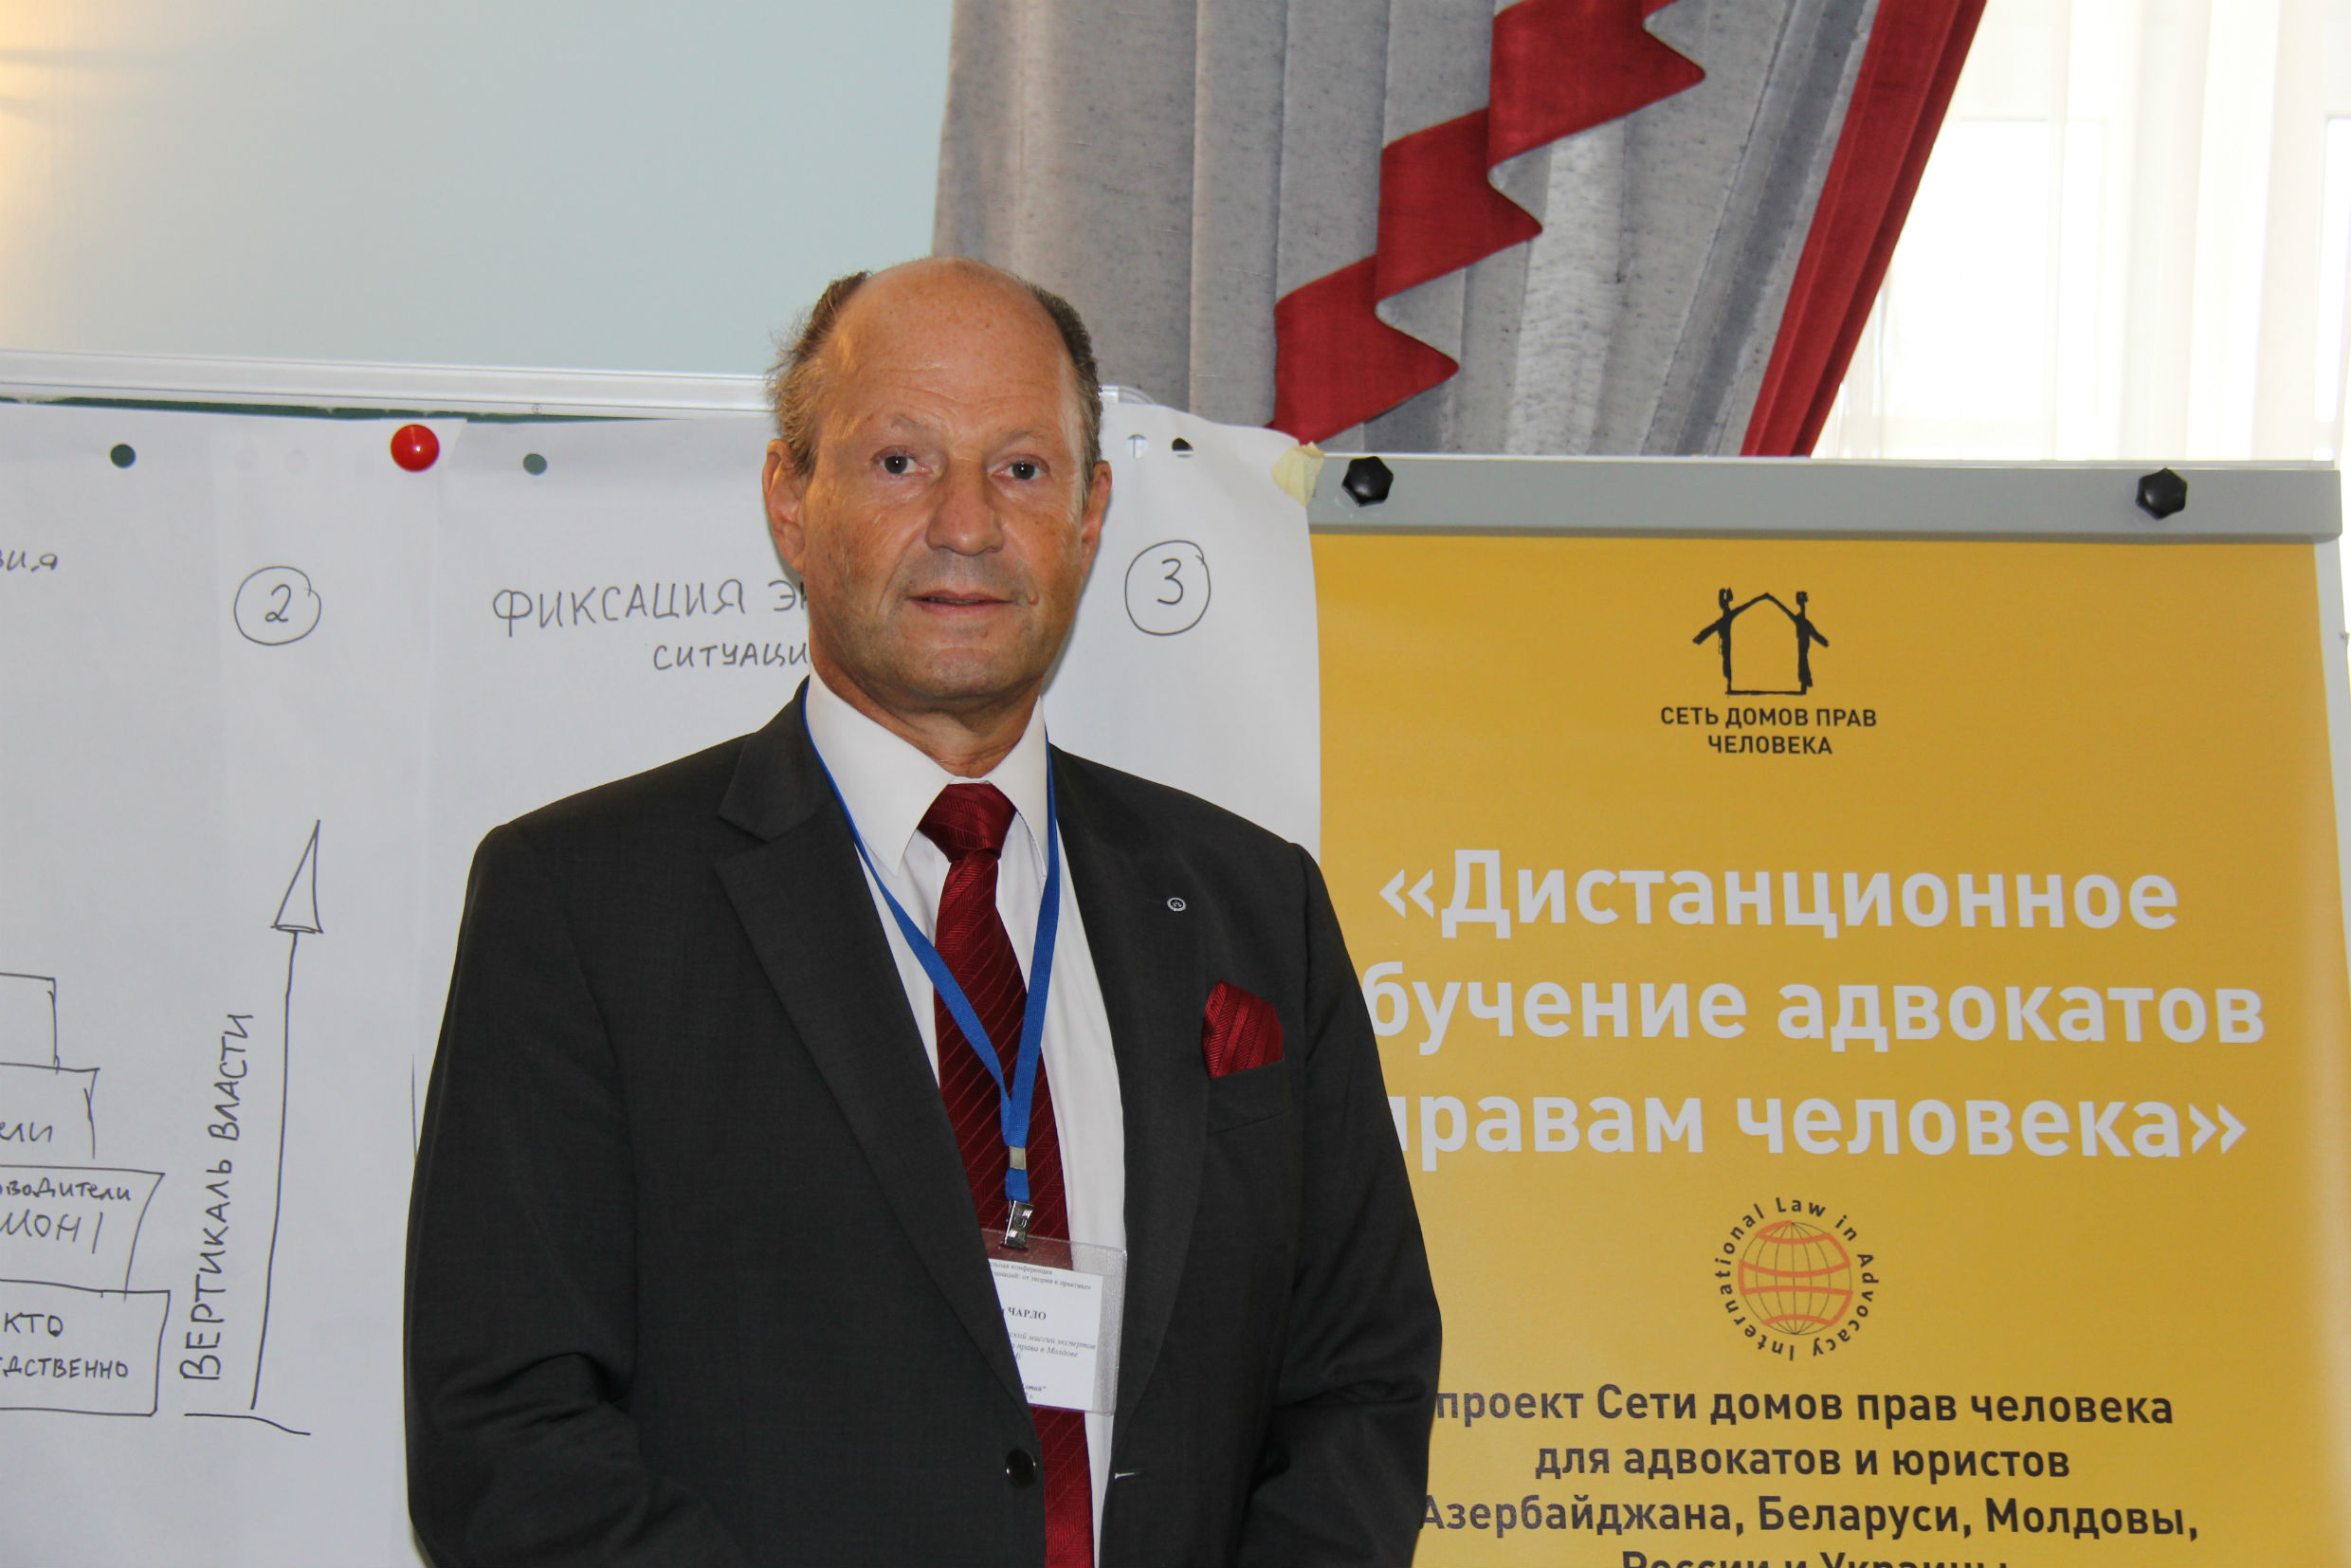 conference moscow_2012_haraldciarlo